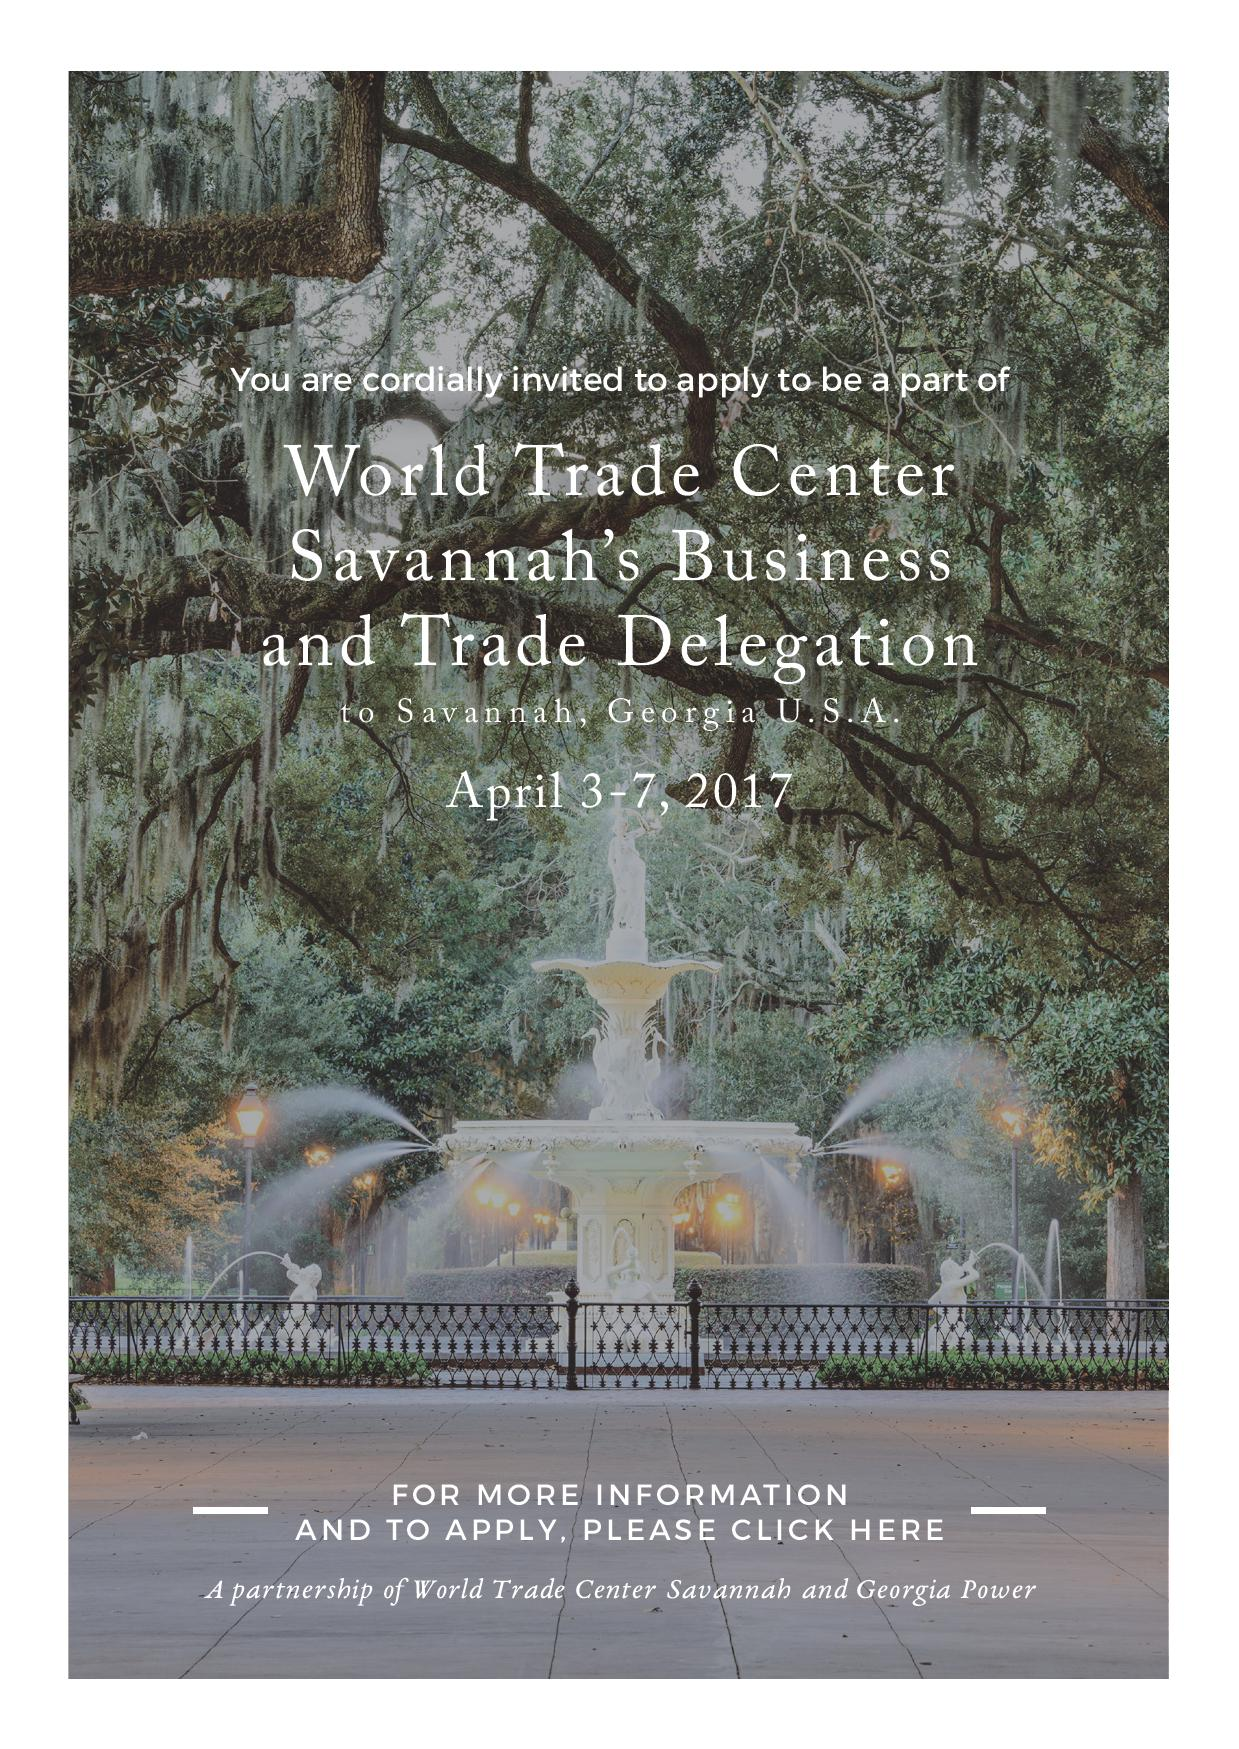 INVITATION: World Trade Center Savannah's Business and Trade Delegation to Georgia USA